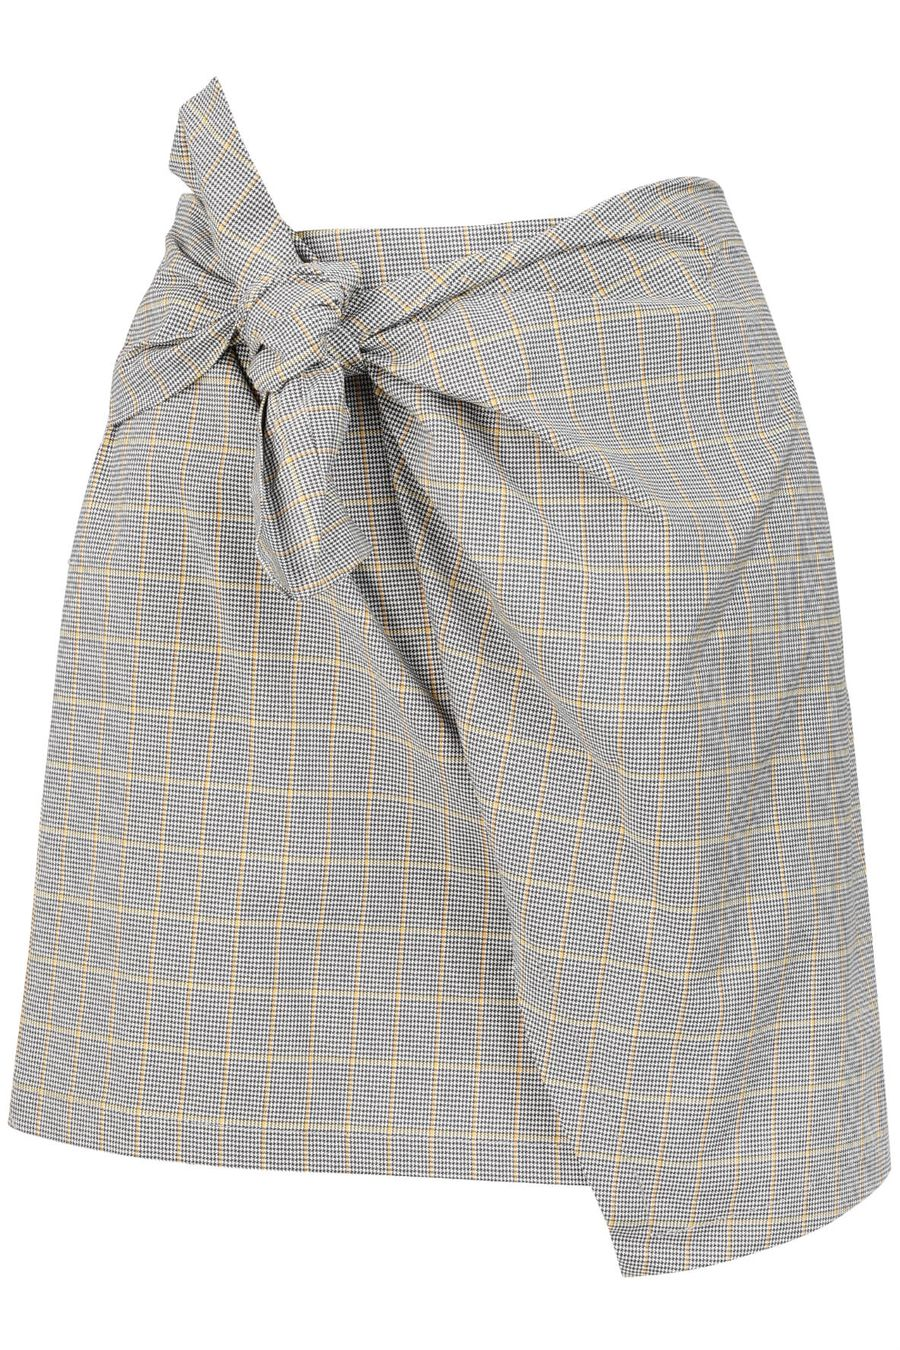 the-fifth-label-picnic-check-skirt-1